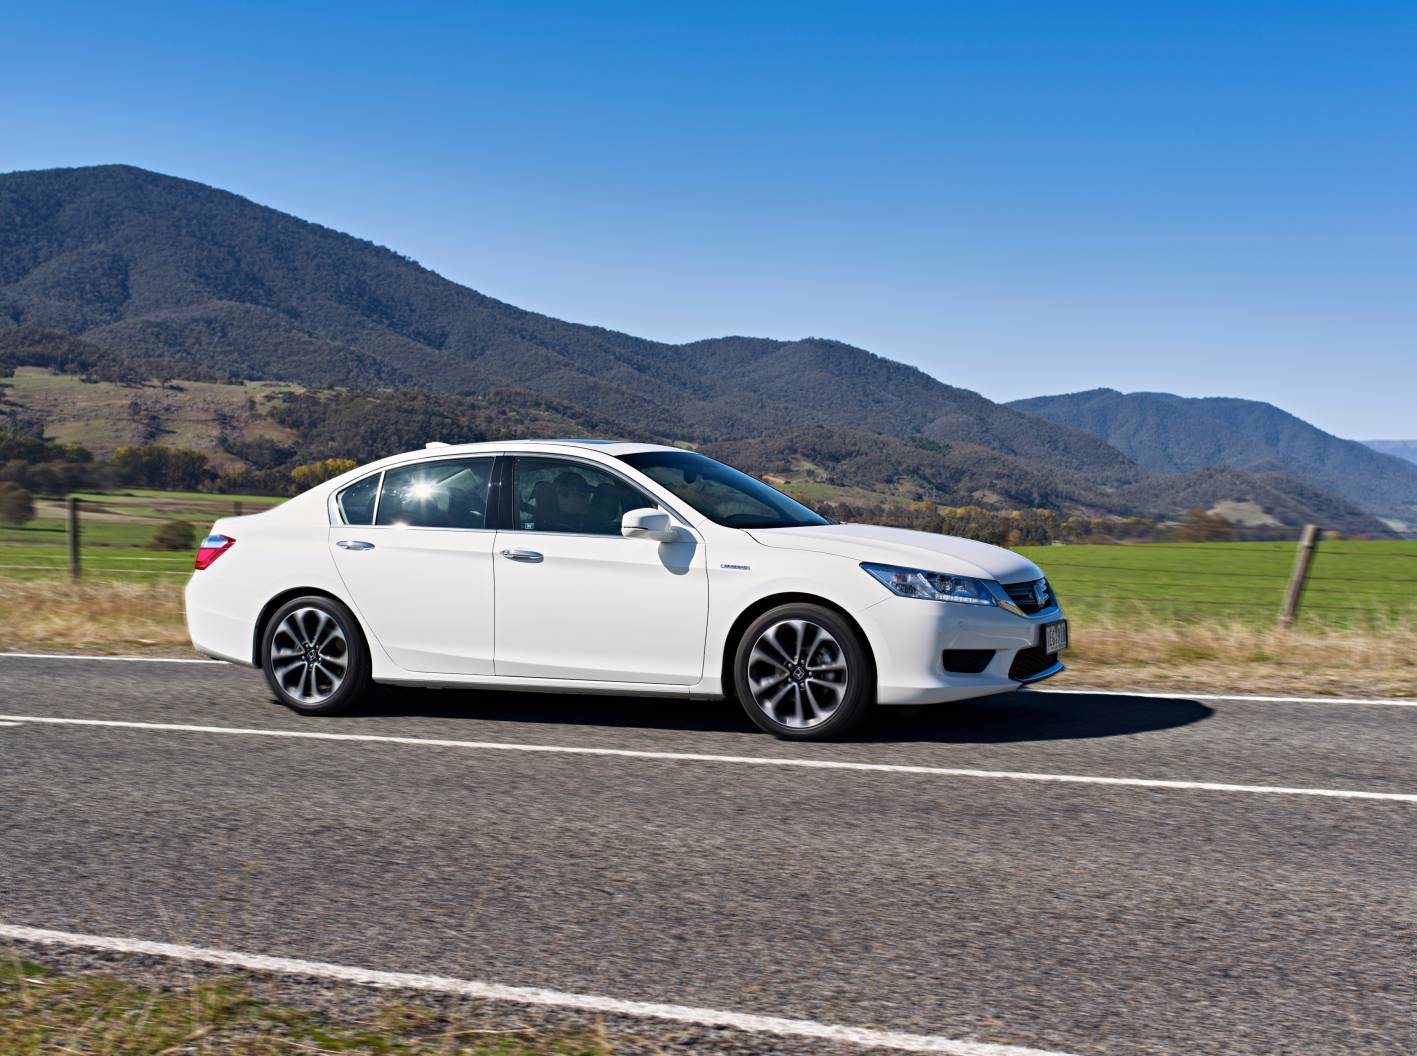 Honda Accord Review: 2015 Honda Accord Sport Hybrid Review